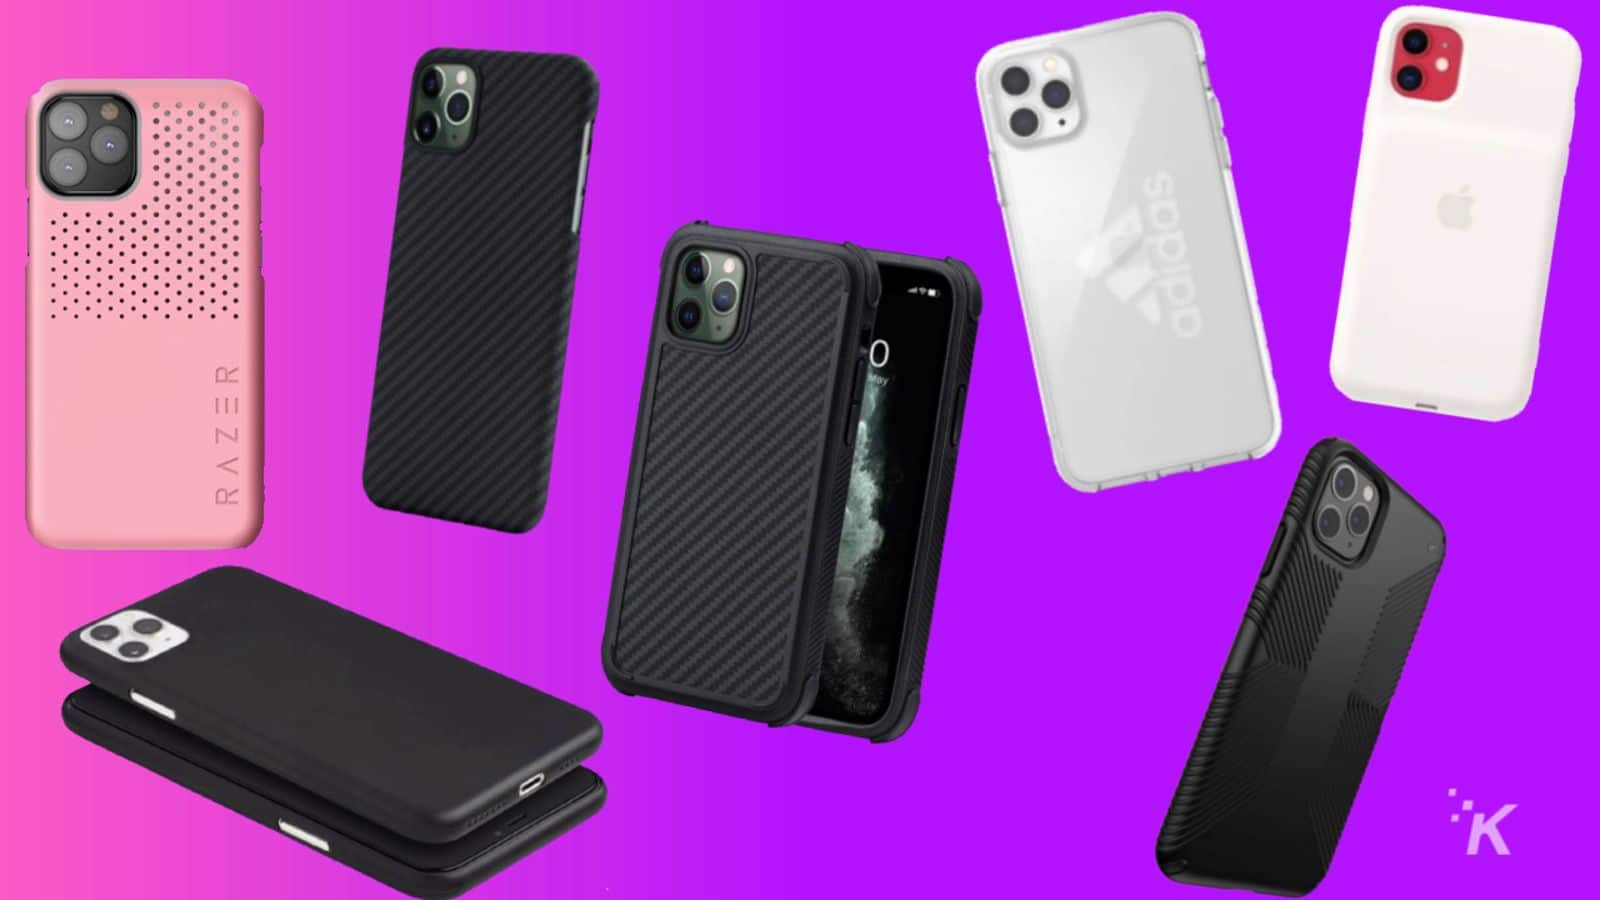 Best iPhone 11 Pro Max Magnetic Cases : Which one is Best